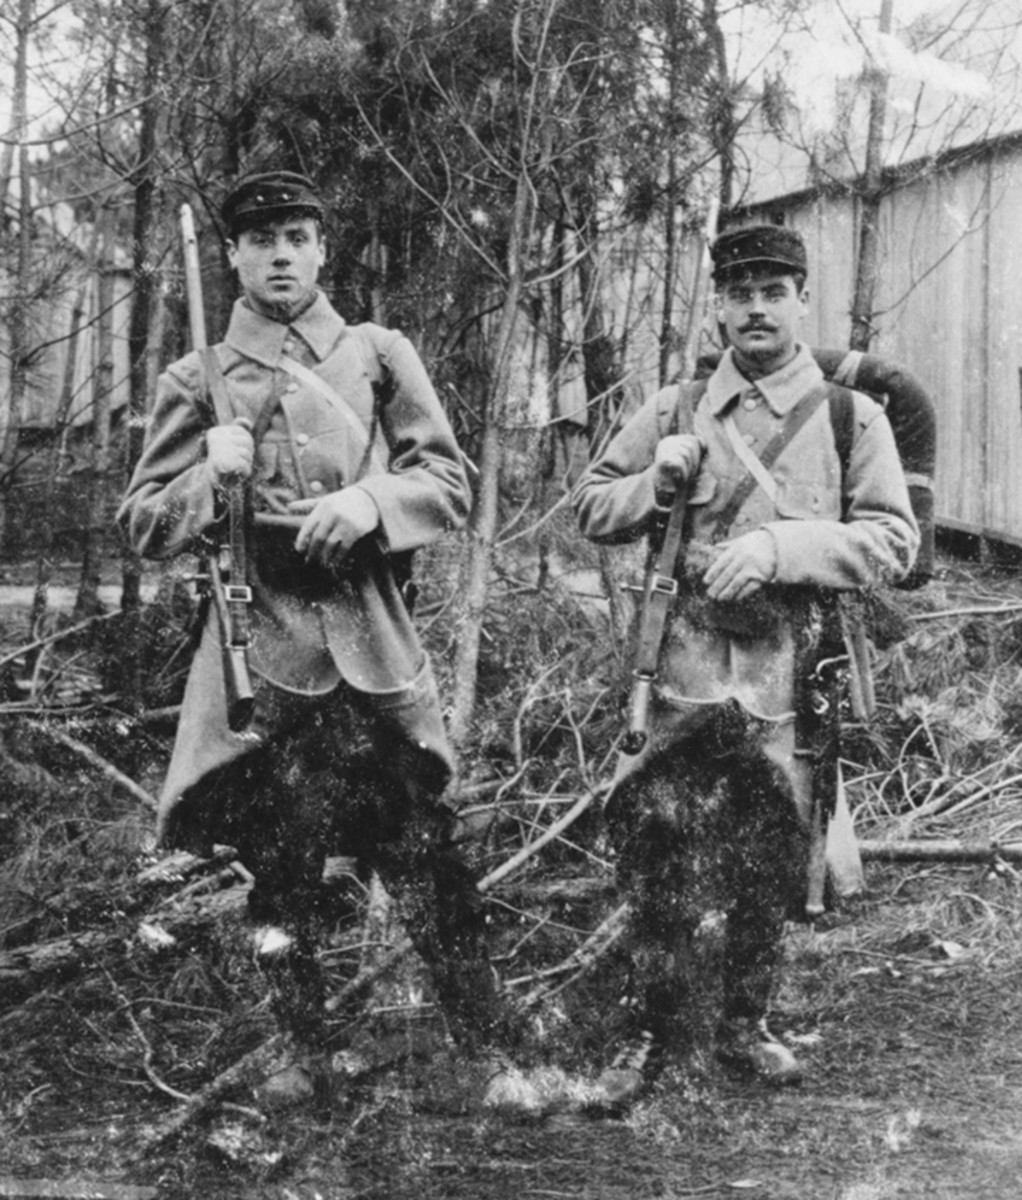 Figure 4. This picture shows two Belgian soldiers somewhere in France at the end of 1914 or the beginning of 1915. They both wear a French uniform supplied by the French but are armed with the Belgian Model 1889 Mauser rifles with the short Model 1889 Mauser infantry bayonet.